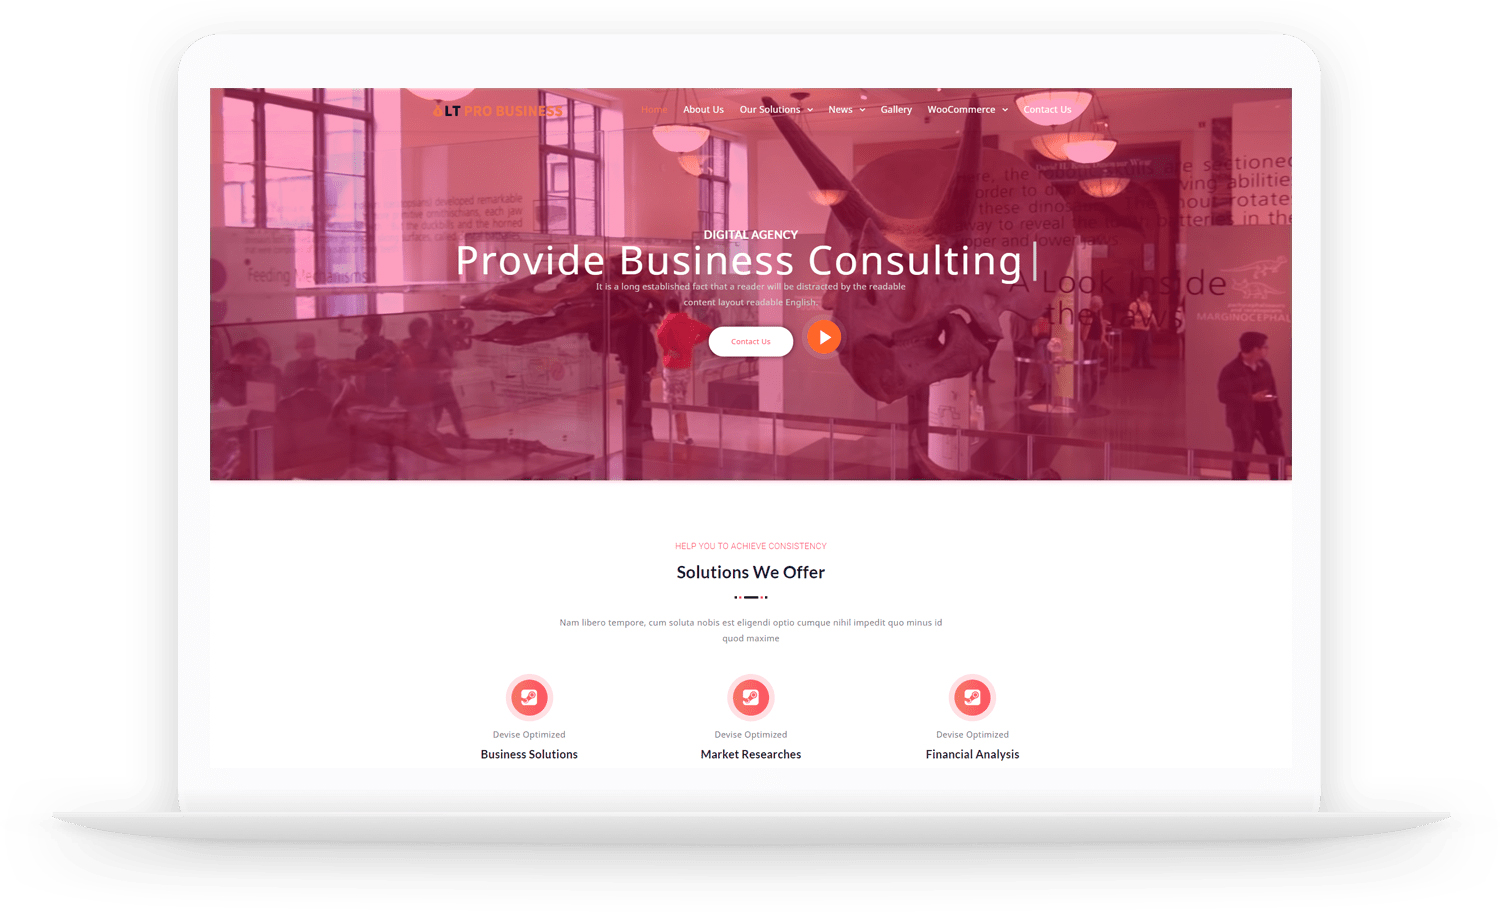 LT-Pro-Business-wordpress-theme